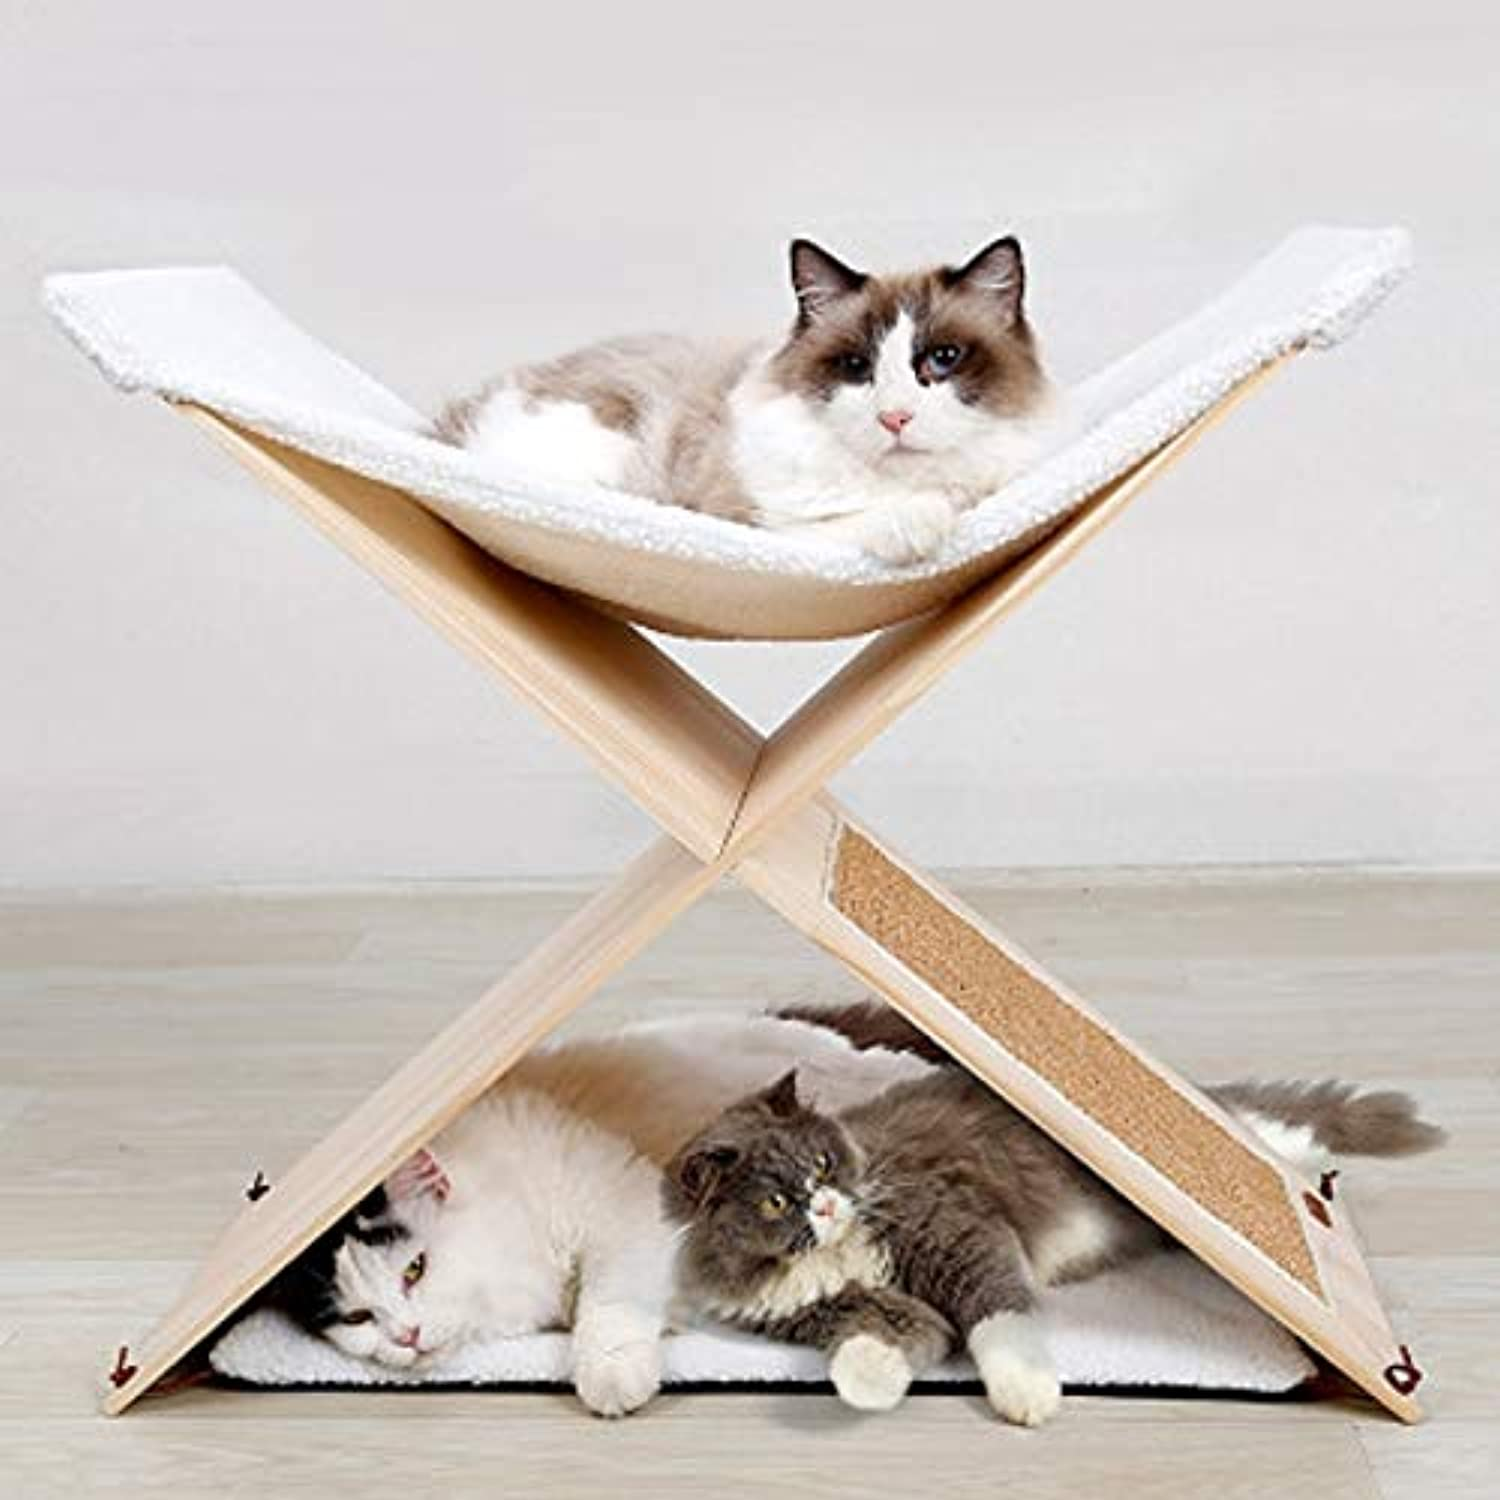 IW.HLMF Cat Furniture Sisal Cat Claw Column Cat Scratch Board Cat Litter Double Cat Frame Solid Wood Claw Claw Cat Climbing Frame